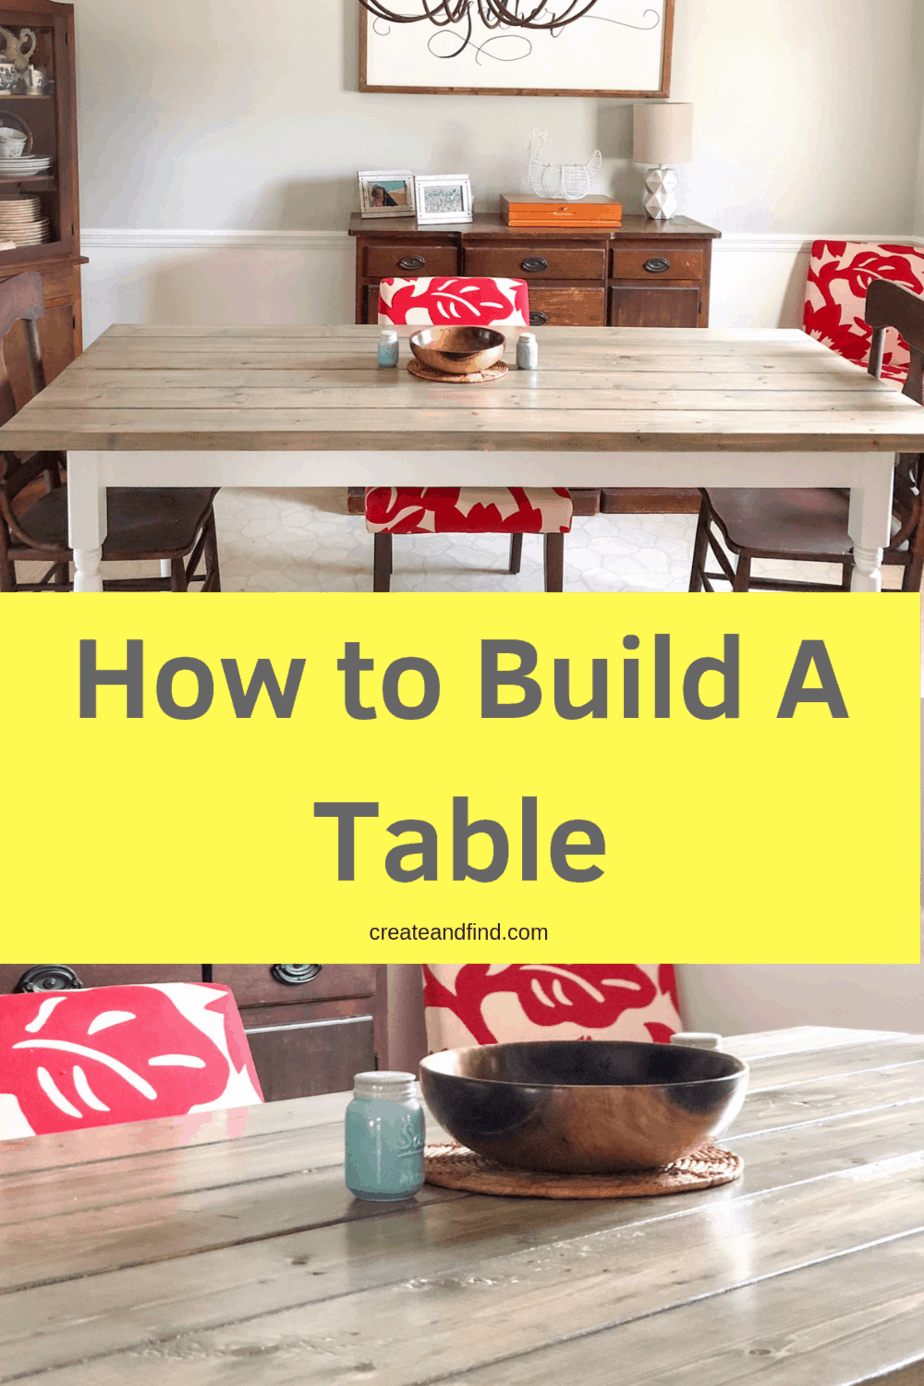 Build your own DIY Farmhouse table using this tutorial - a DIY project that'll save you hundreds of dollars and give your dining room farmhouse style #createandfind #diyfarmhousetable #diningtable #diyprojects